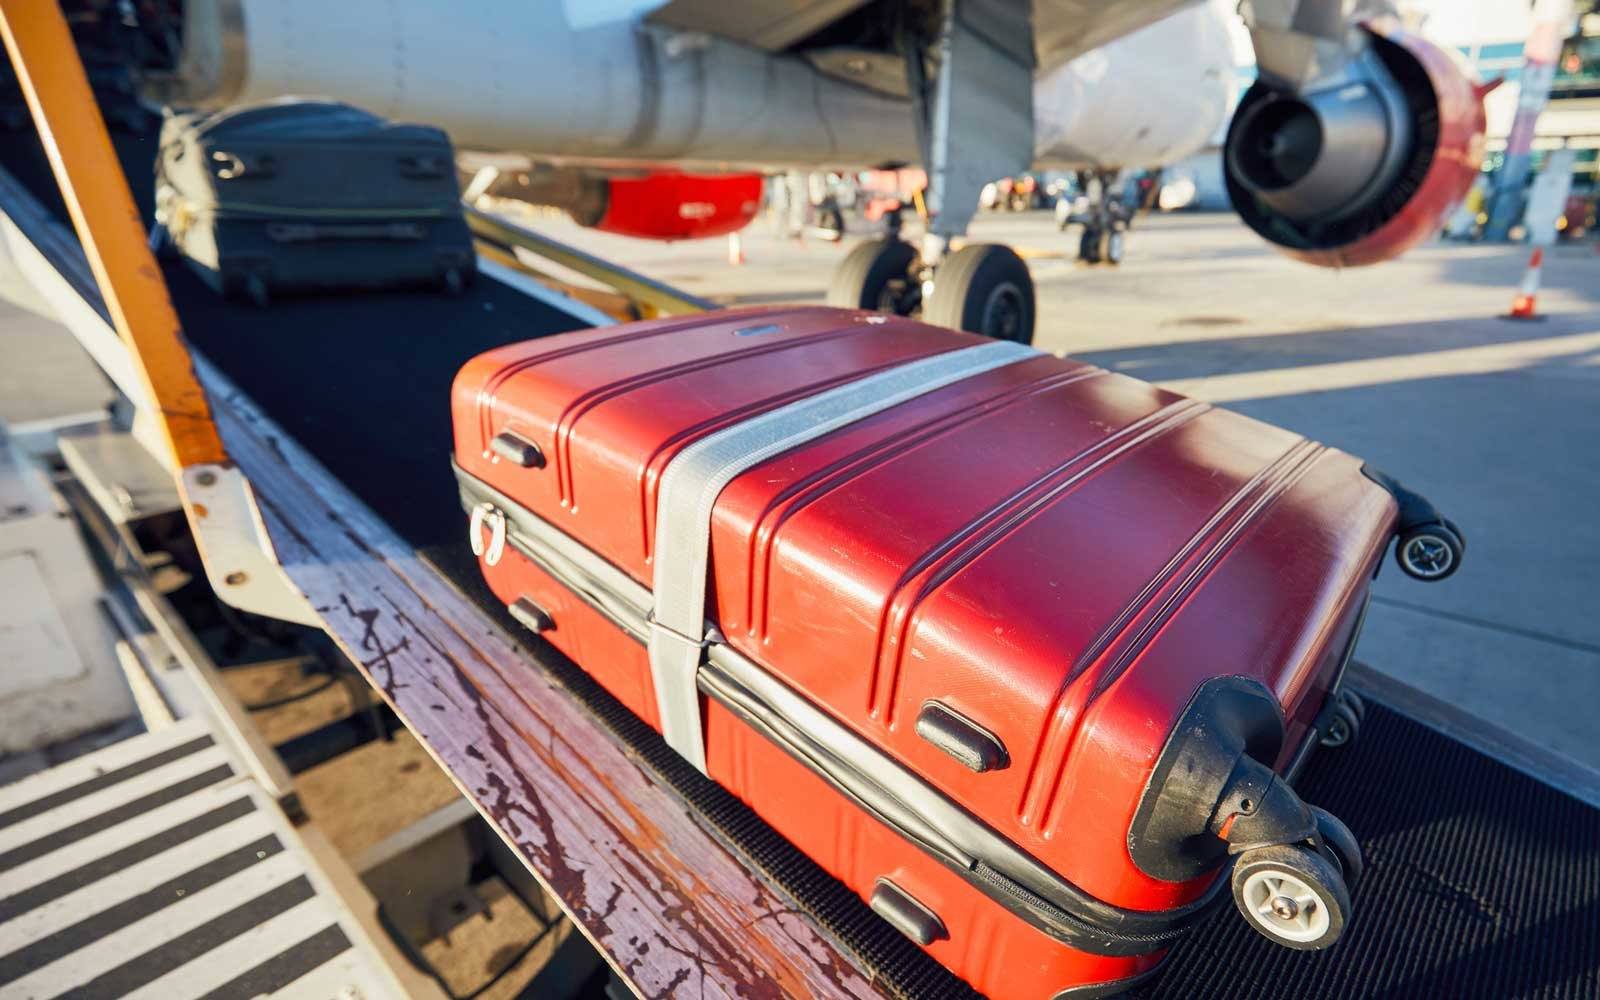 Luggage Loading Into Airplane